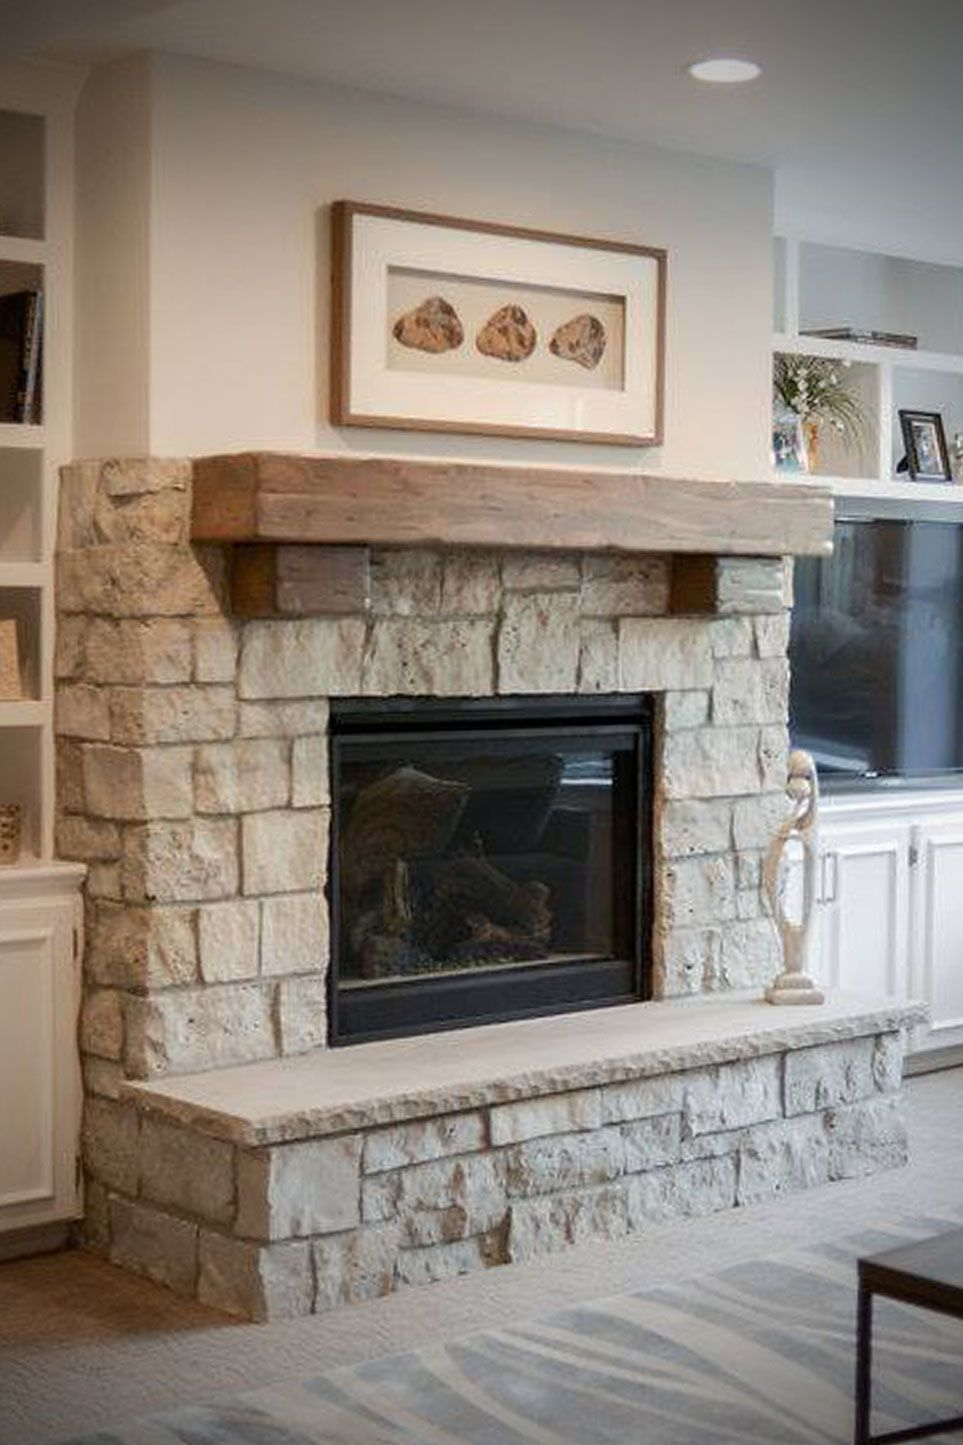 Natural Stone Fireplace Living Room Interior Outdoor Patio Stone Veneers Fireplace Design Stone Fireplace Designs Natural Stone Fireplaces